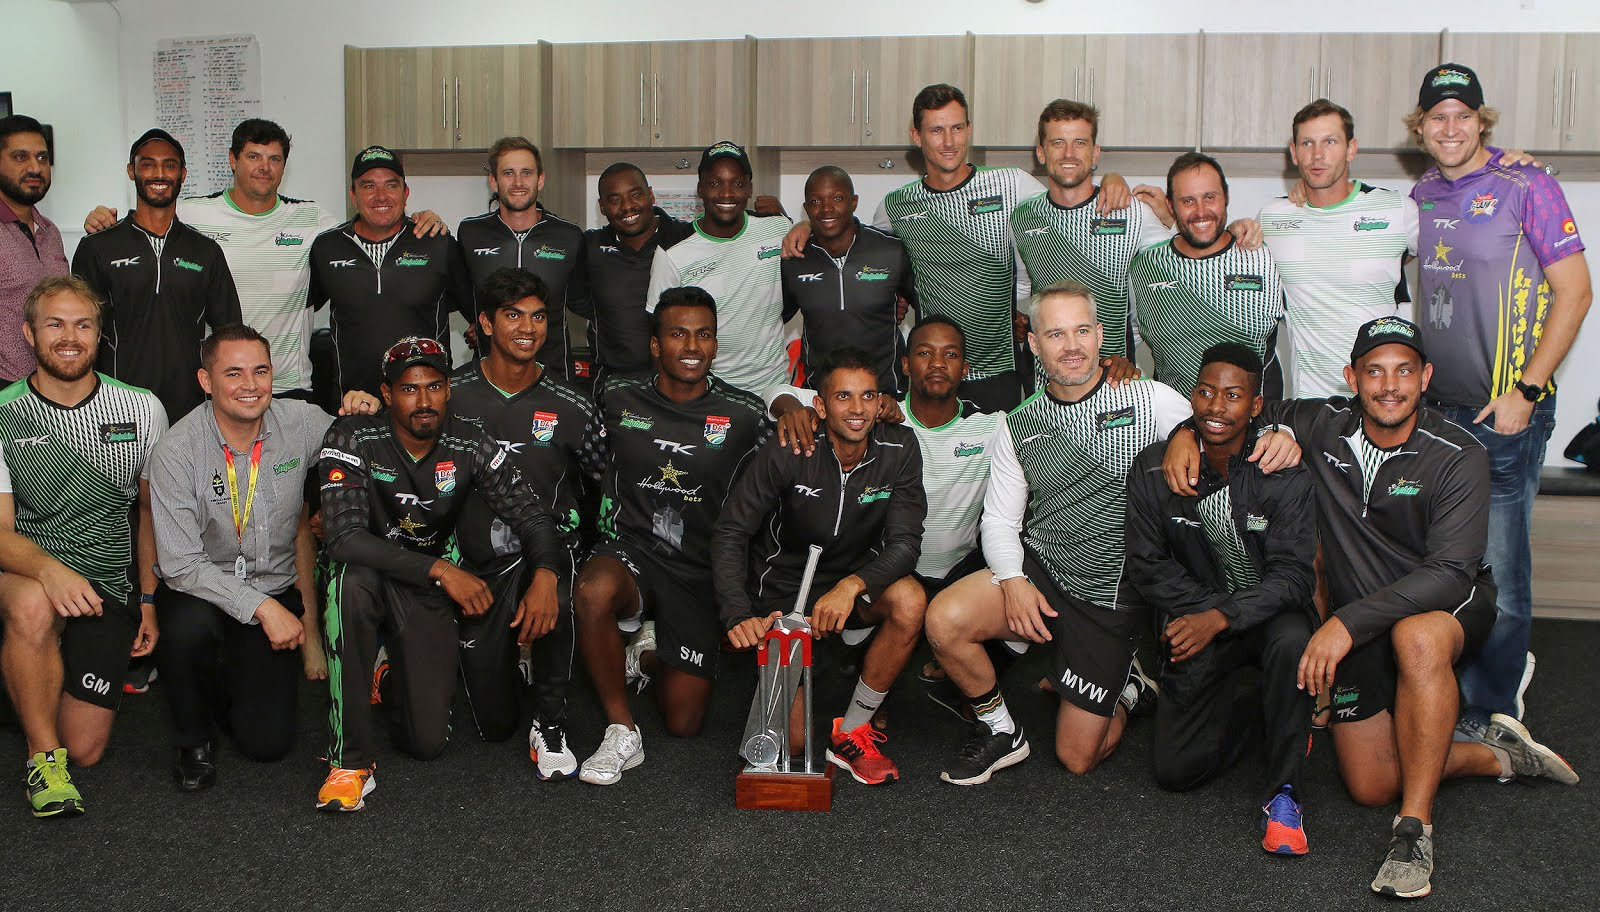 Hollywoodbets Dolphins - Momentum One Day Cup Champions - 2017/18 Season - Team posing